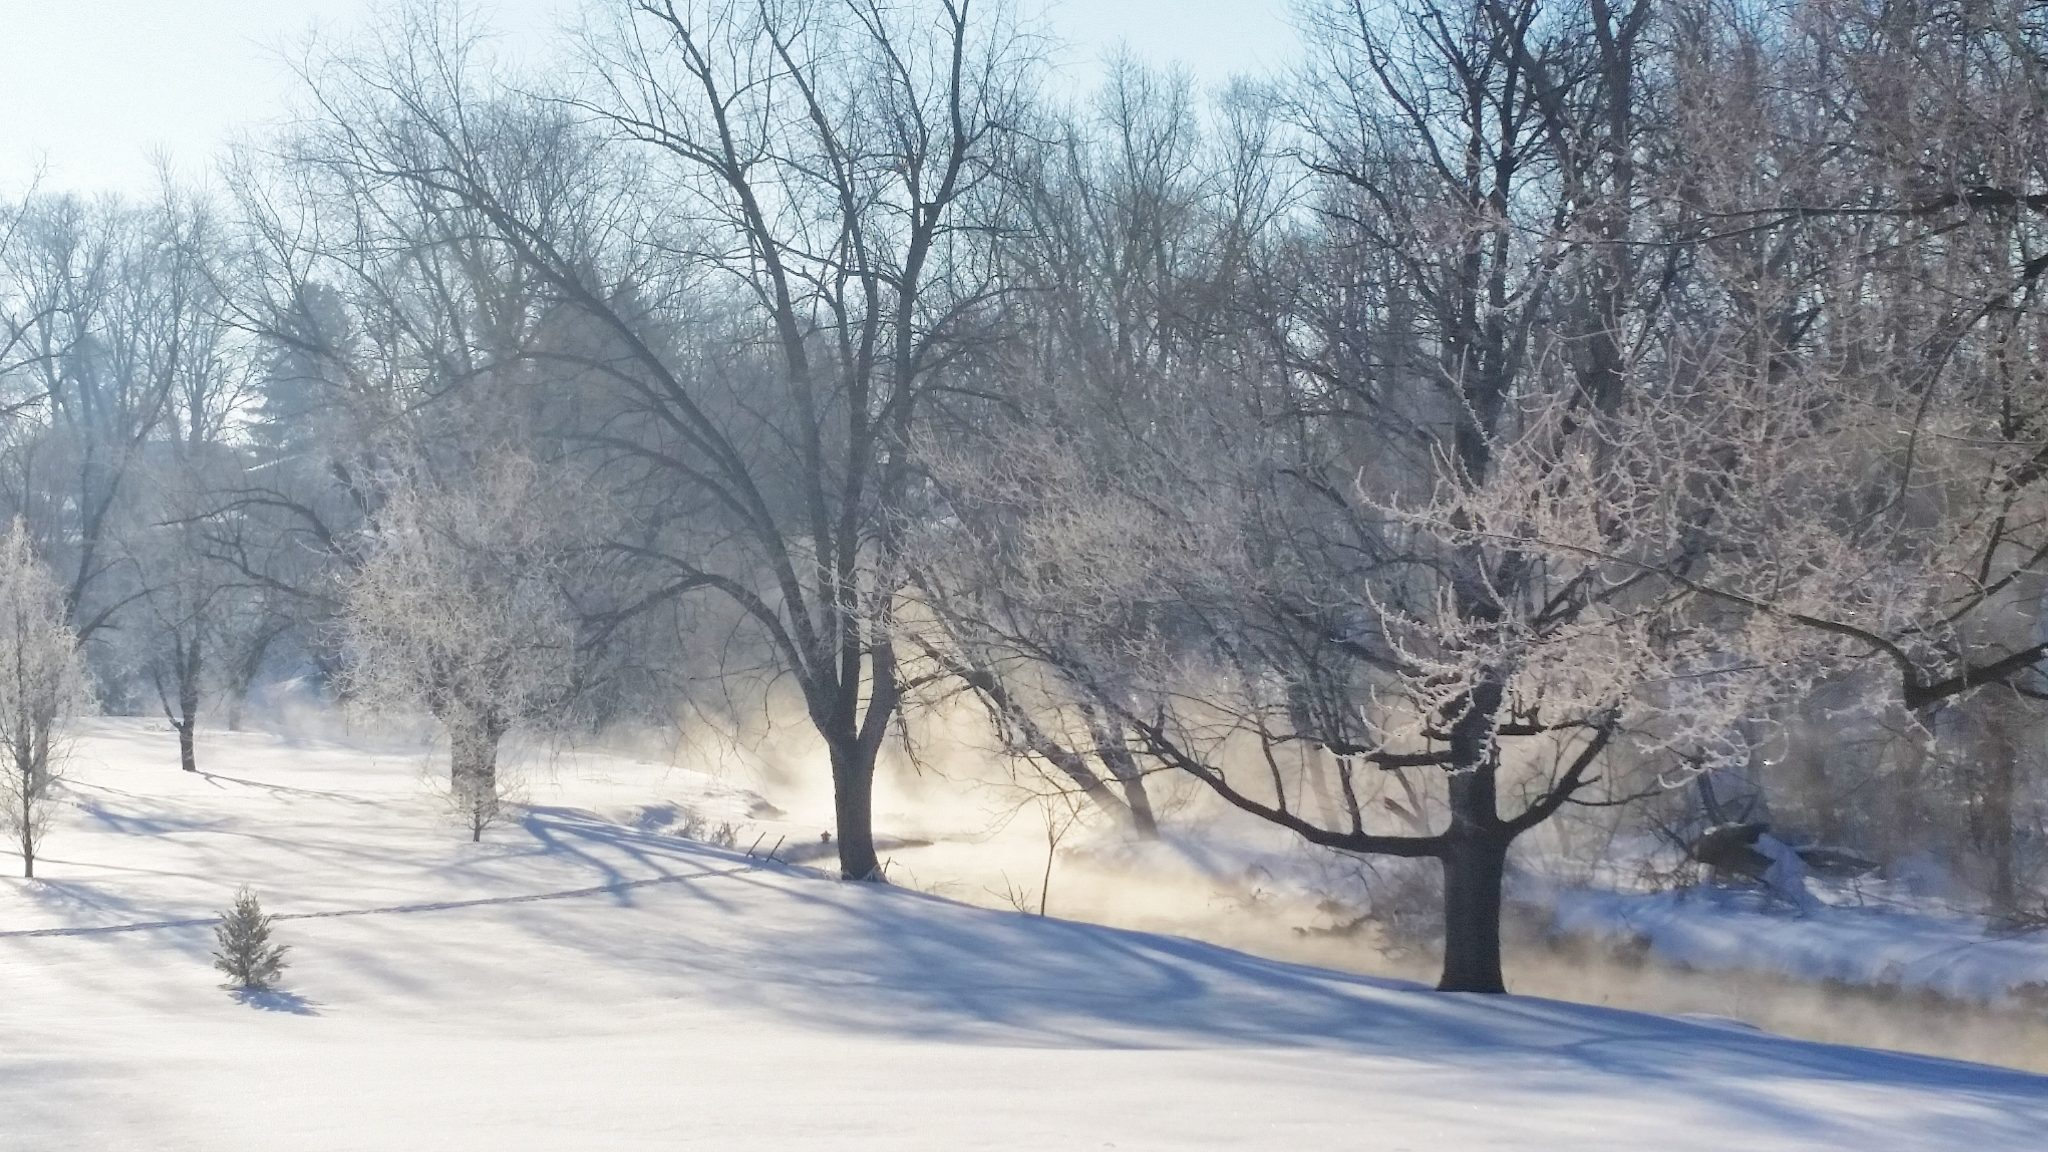 7 Things to Do This Winter in the Lebanon Valley